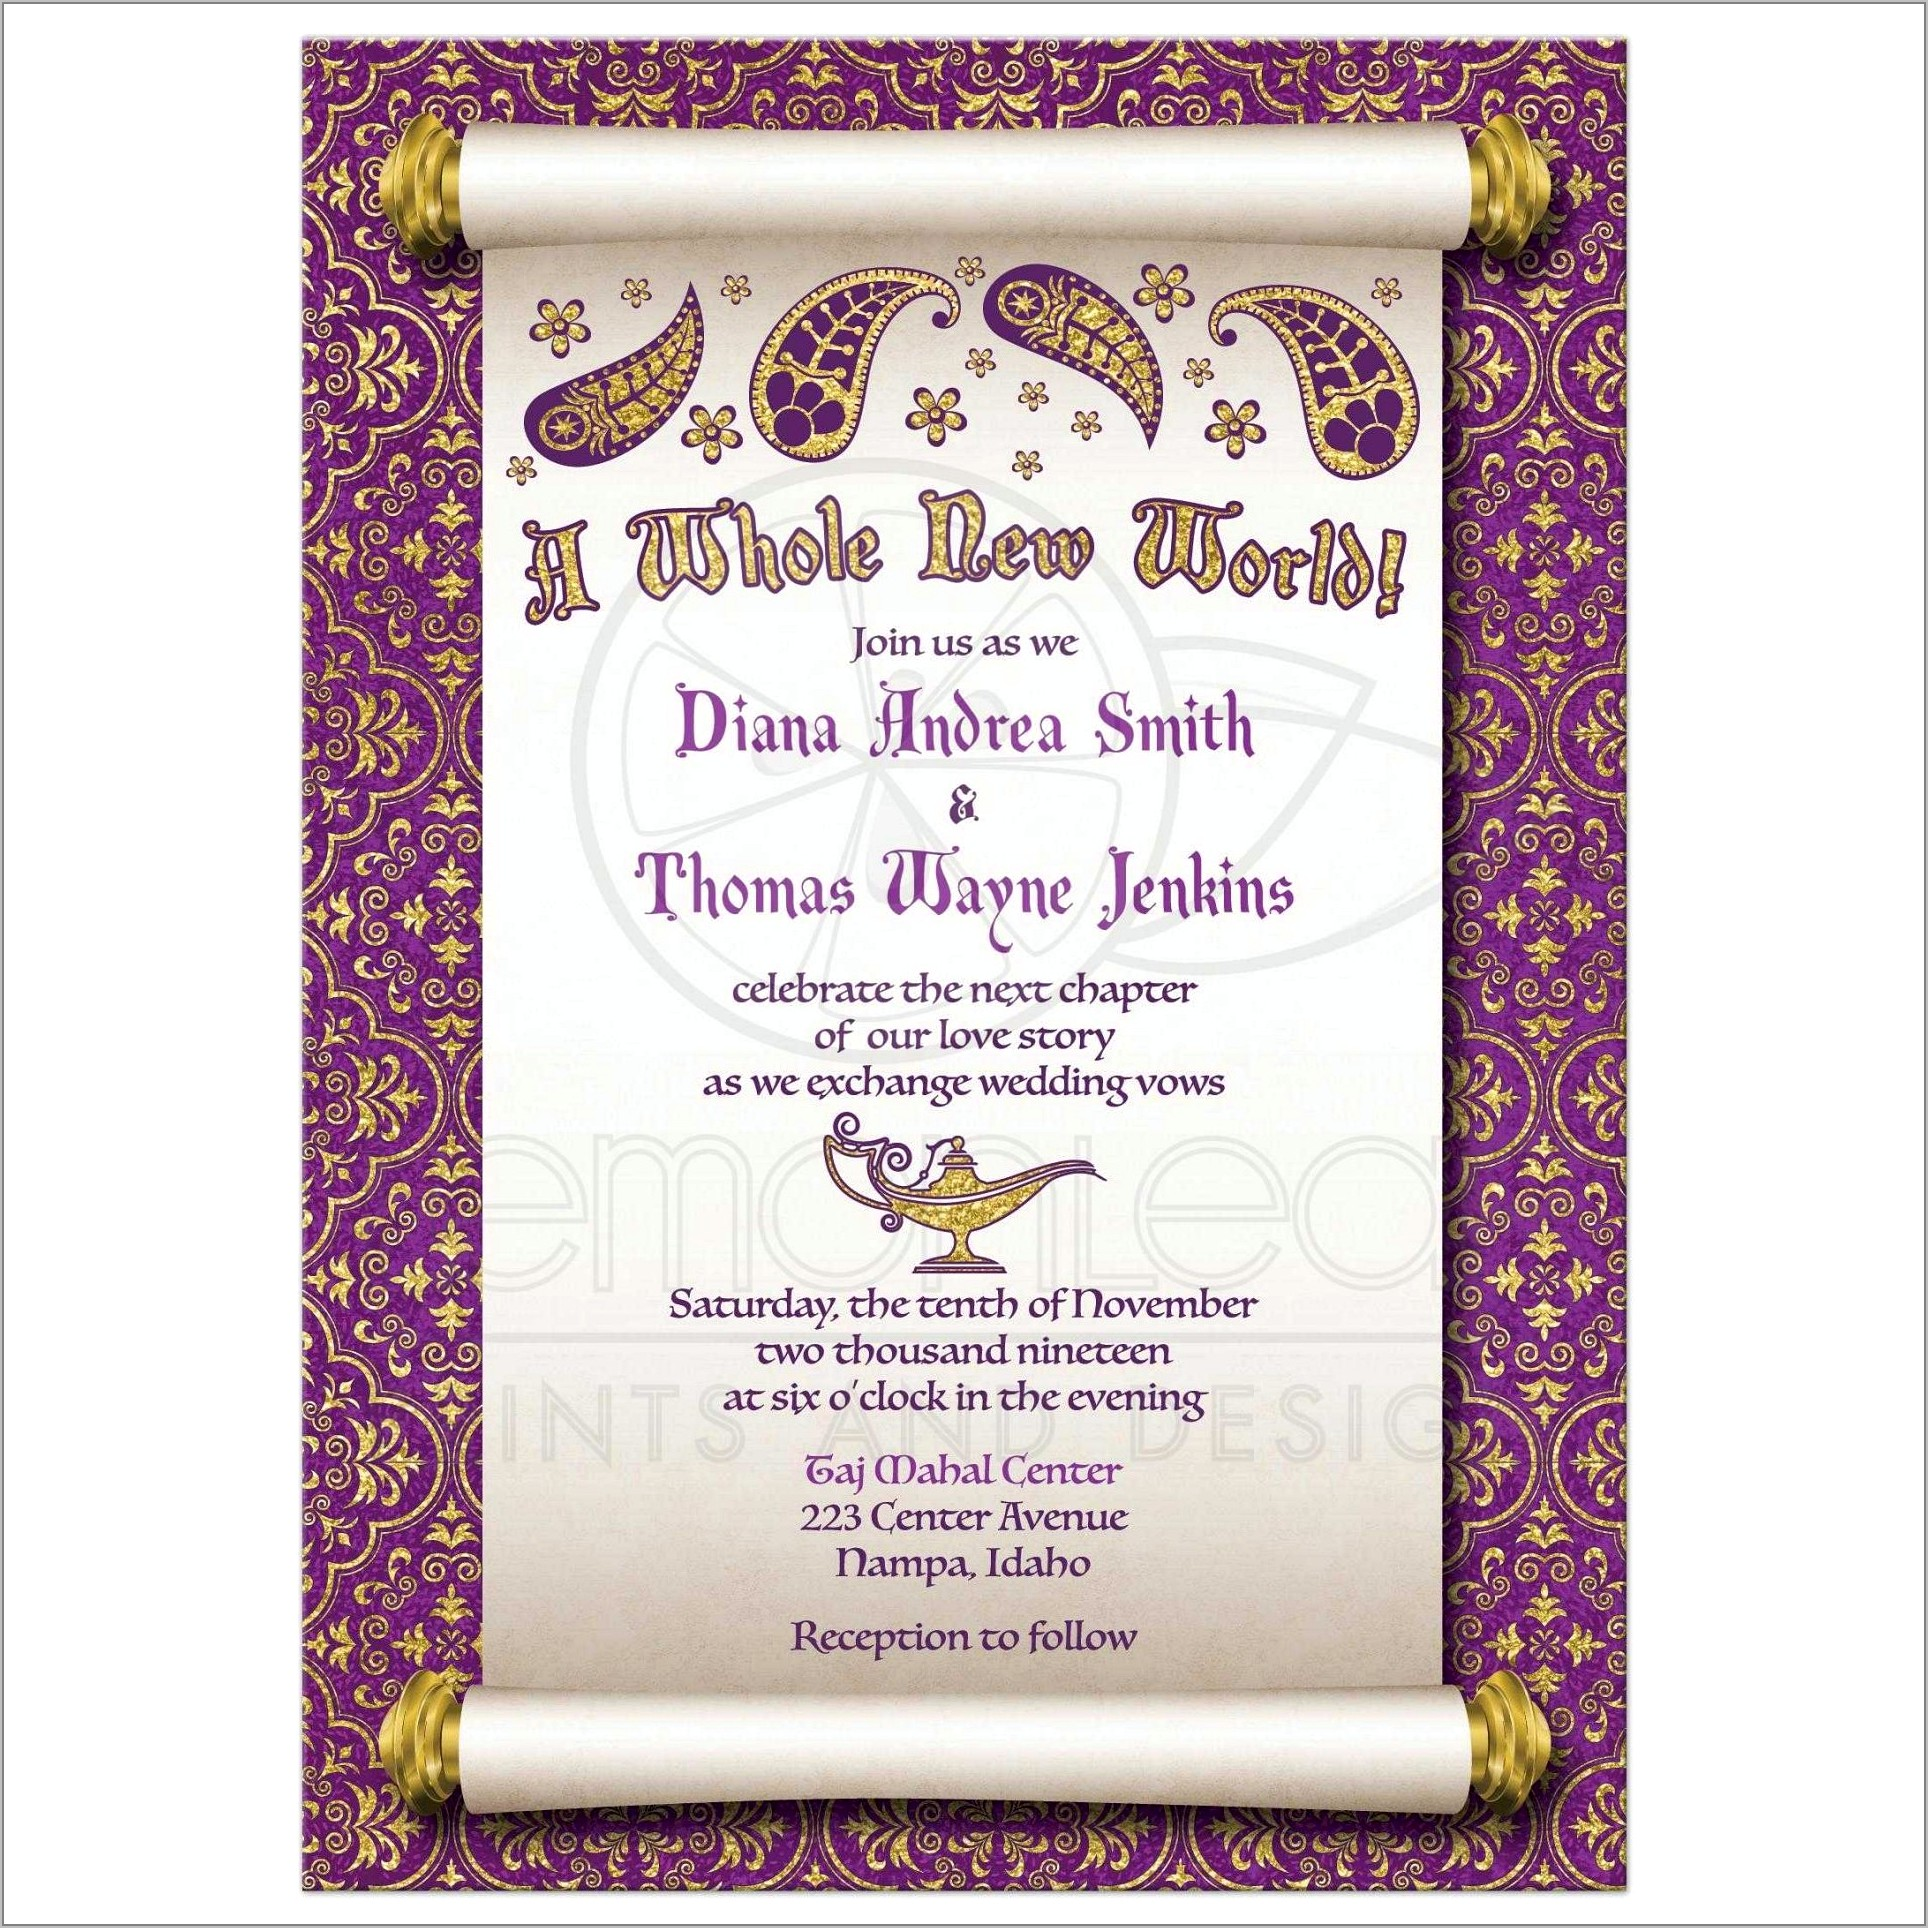 Royal Fairytale Wedding Invitation Wording